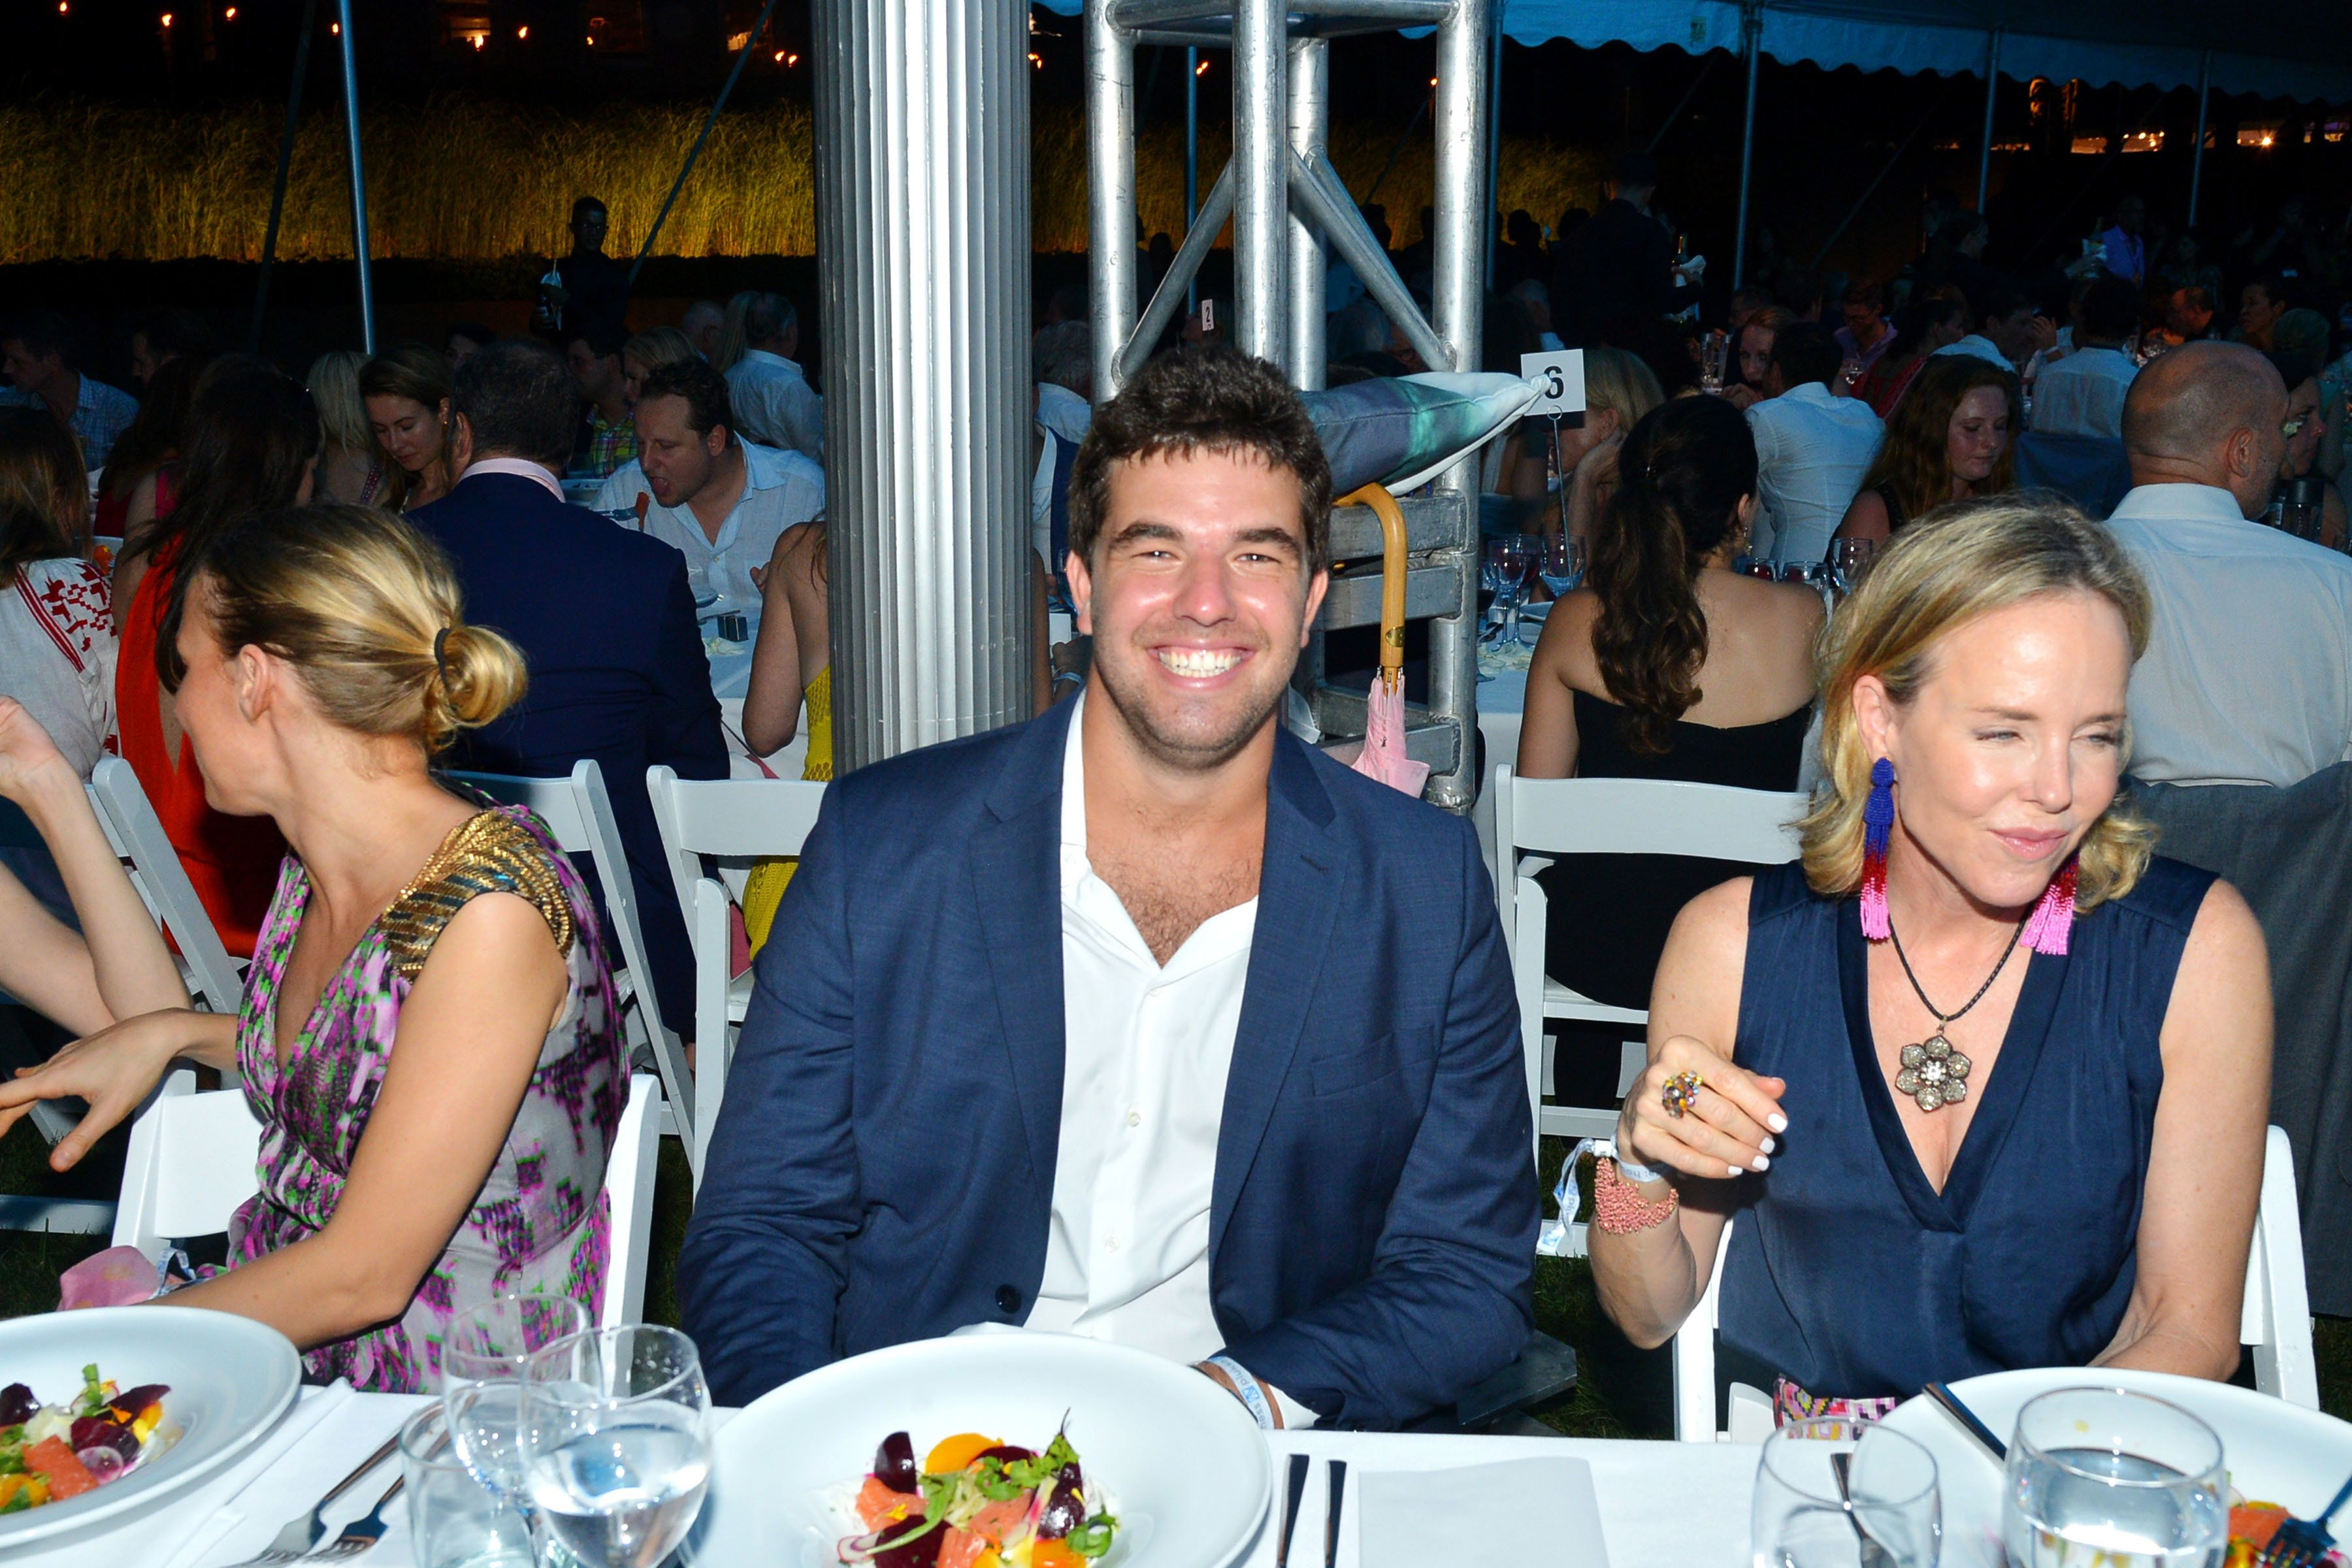 Billy McFarland'sFyre Festival was supposed to be a luxurious escape for wealthymillennials. It didn't turn out t